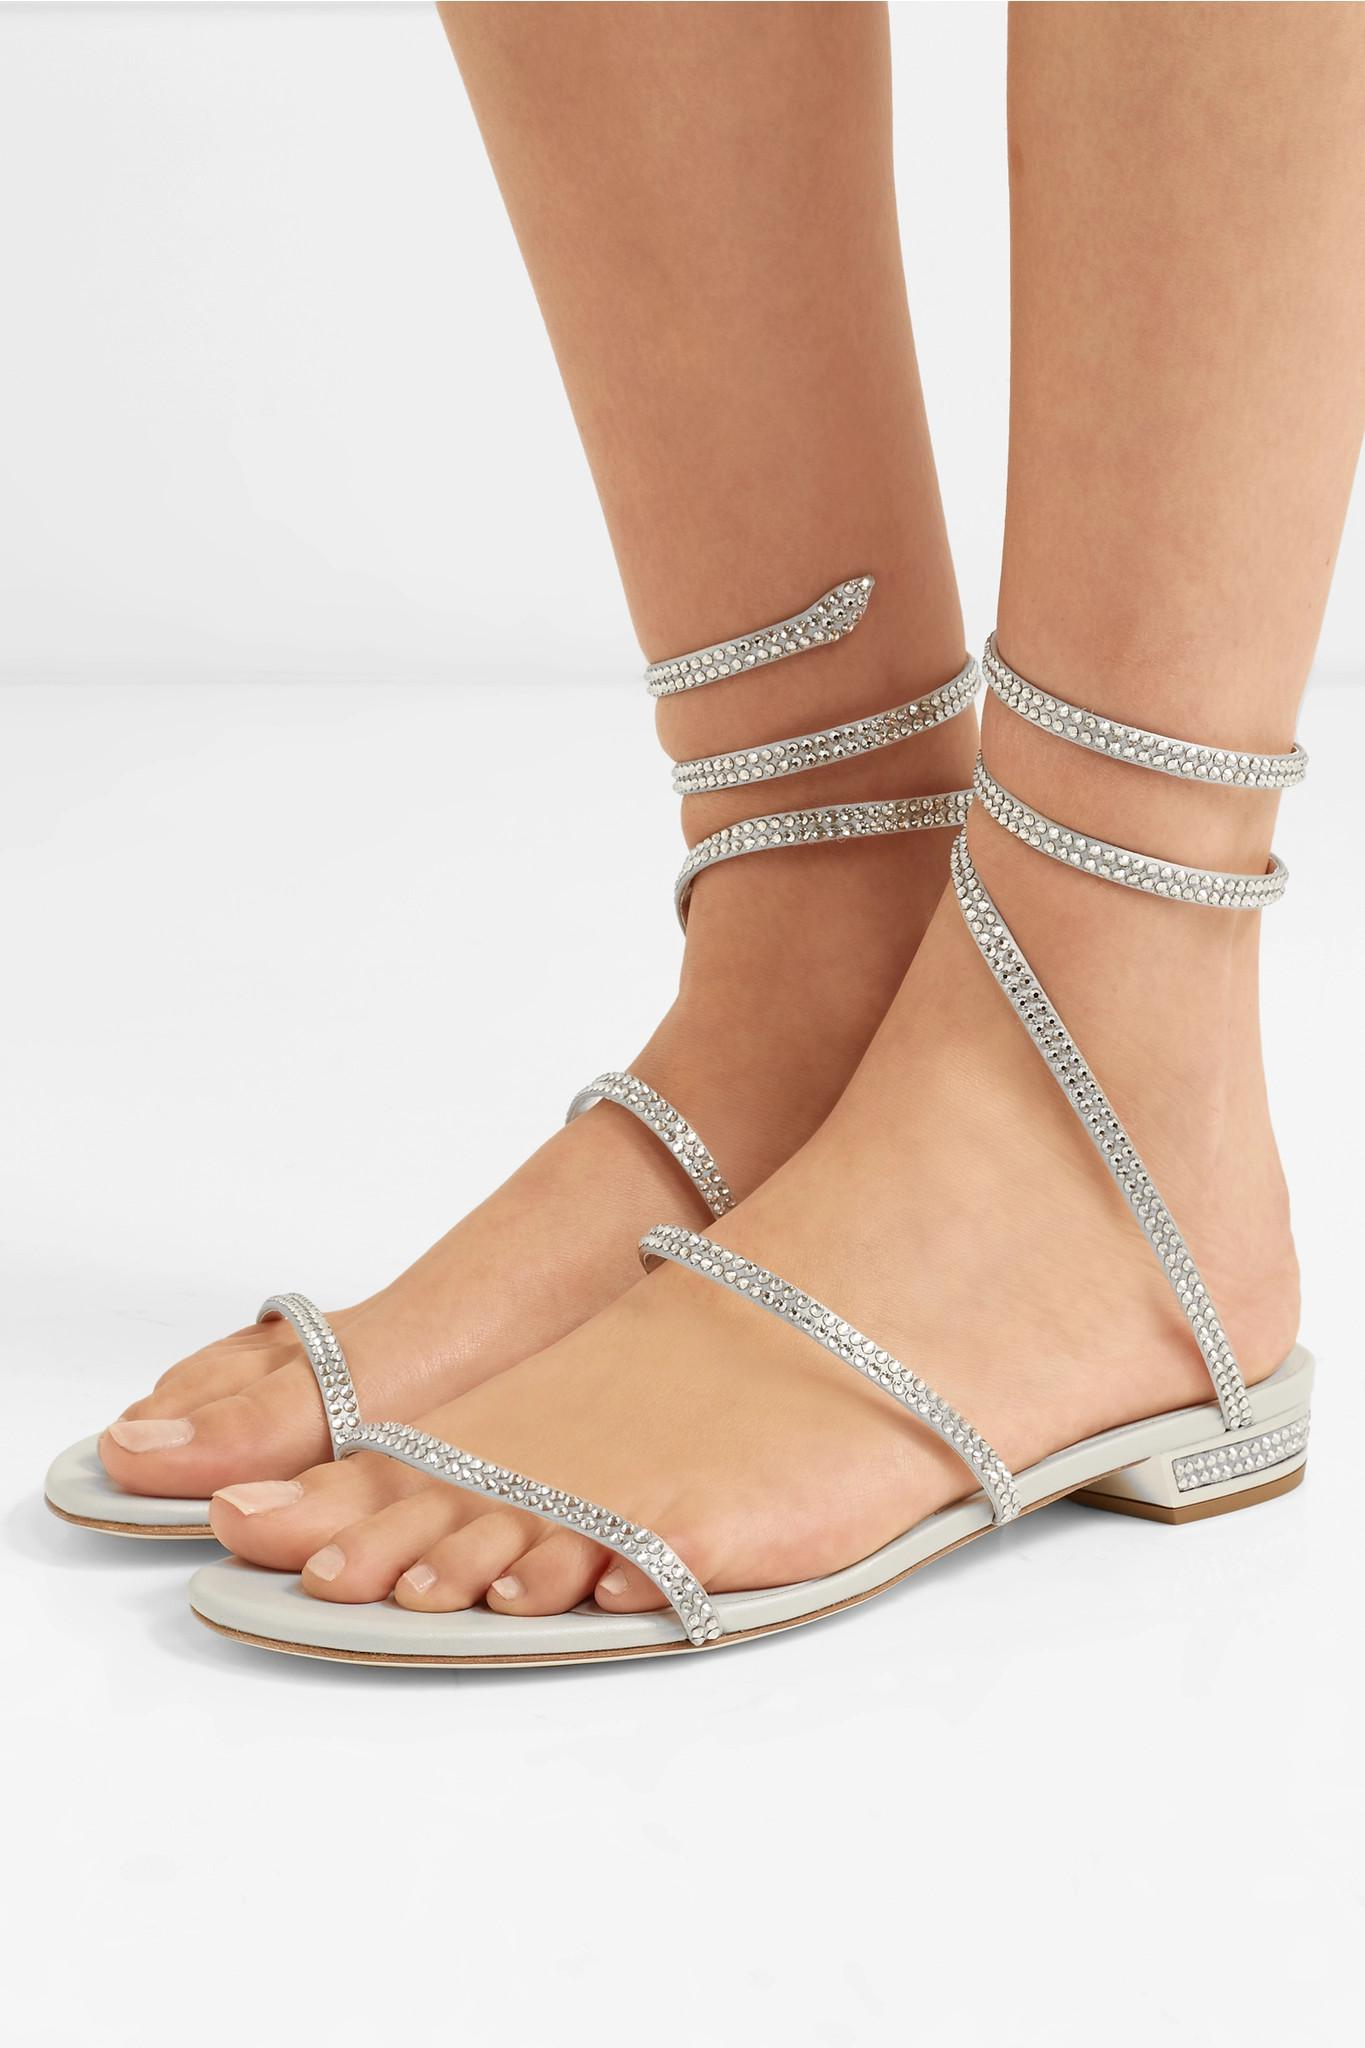 6d94e887deddf8 Rene Caovilla - Cleo Crystal-embellished Metallic Leather Sandals - Lyst.  View fullscreen